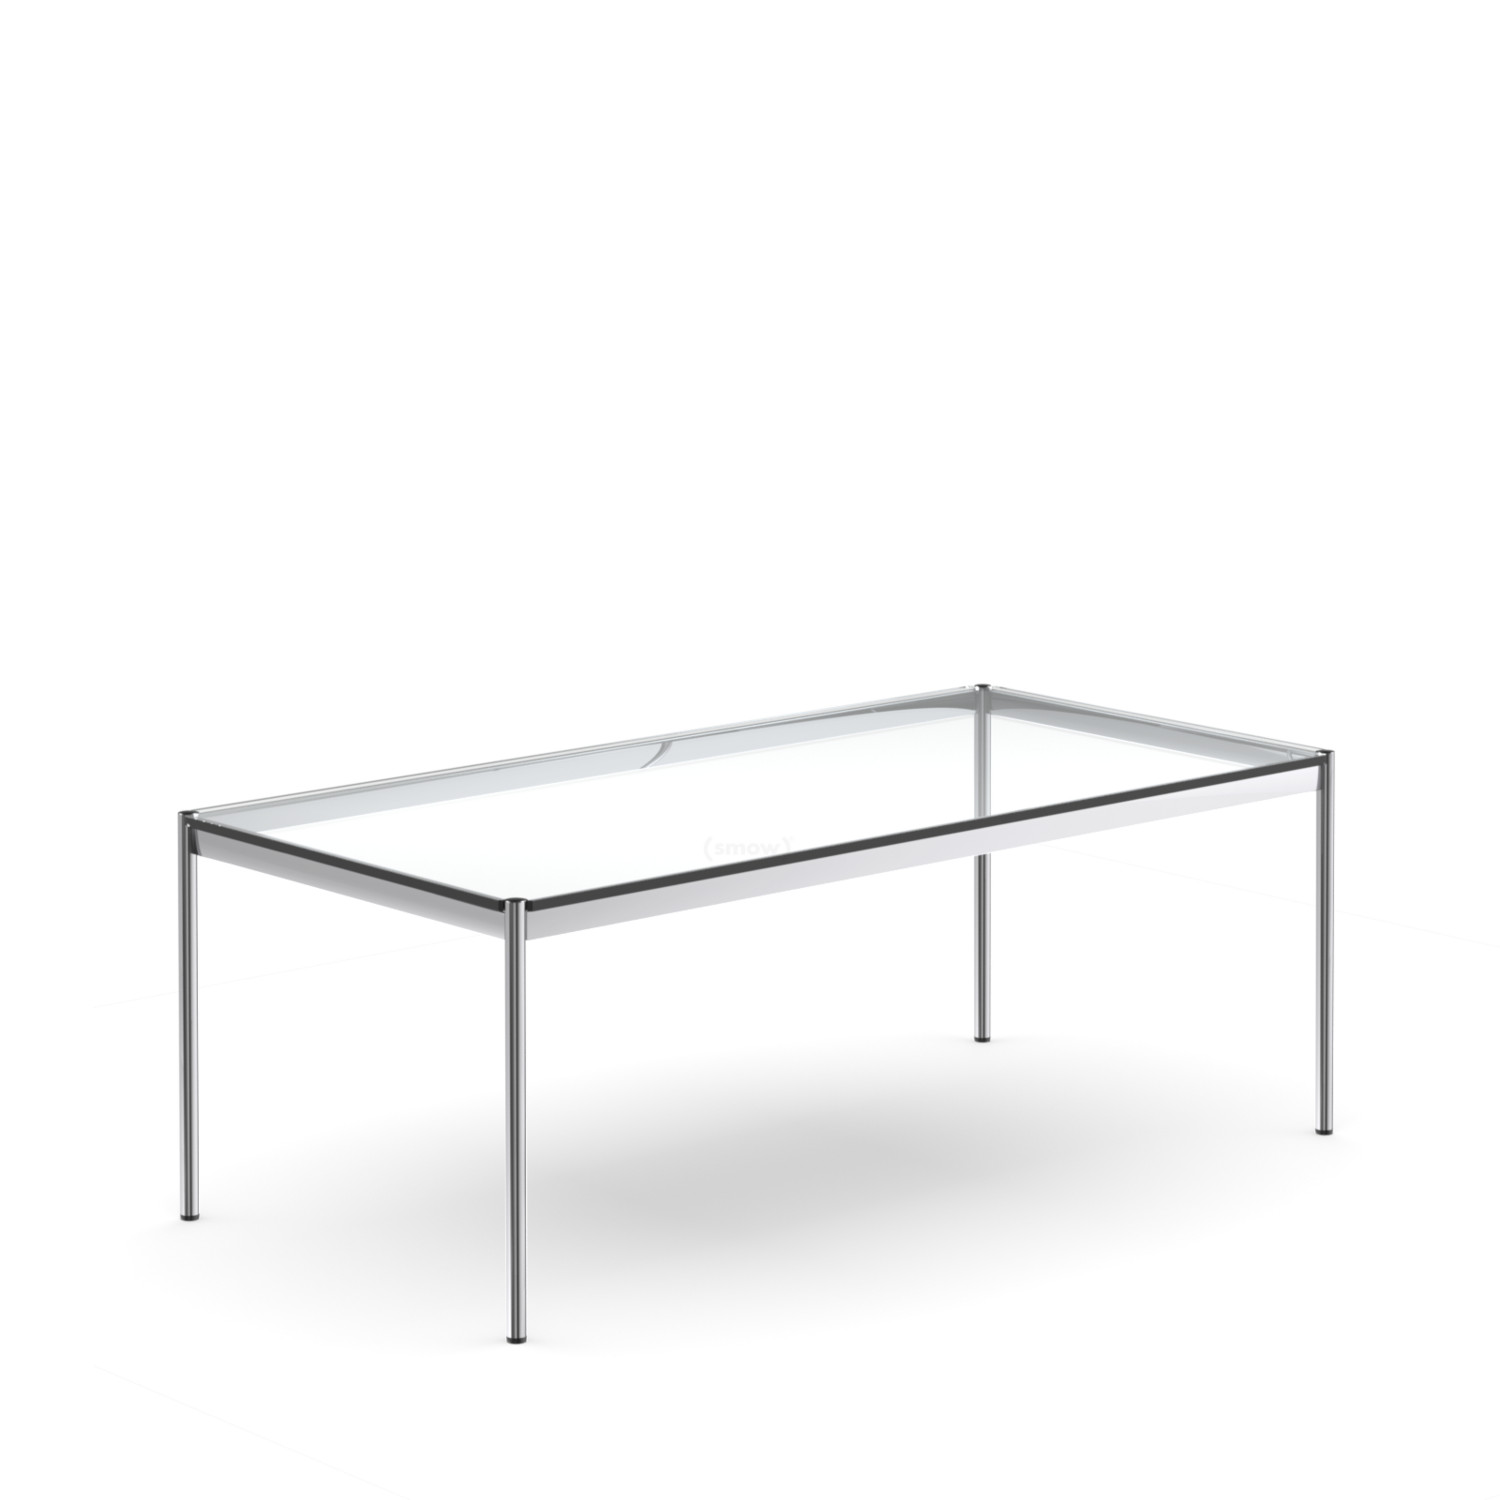 usm haller tisch 100 x 200 cm glas transparent von. Black Bedroom Furniture Sets. Home Design Ideas